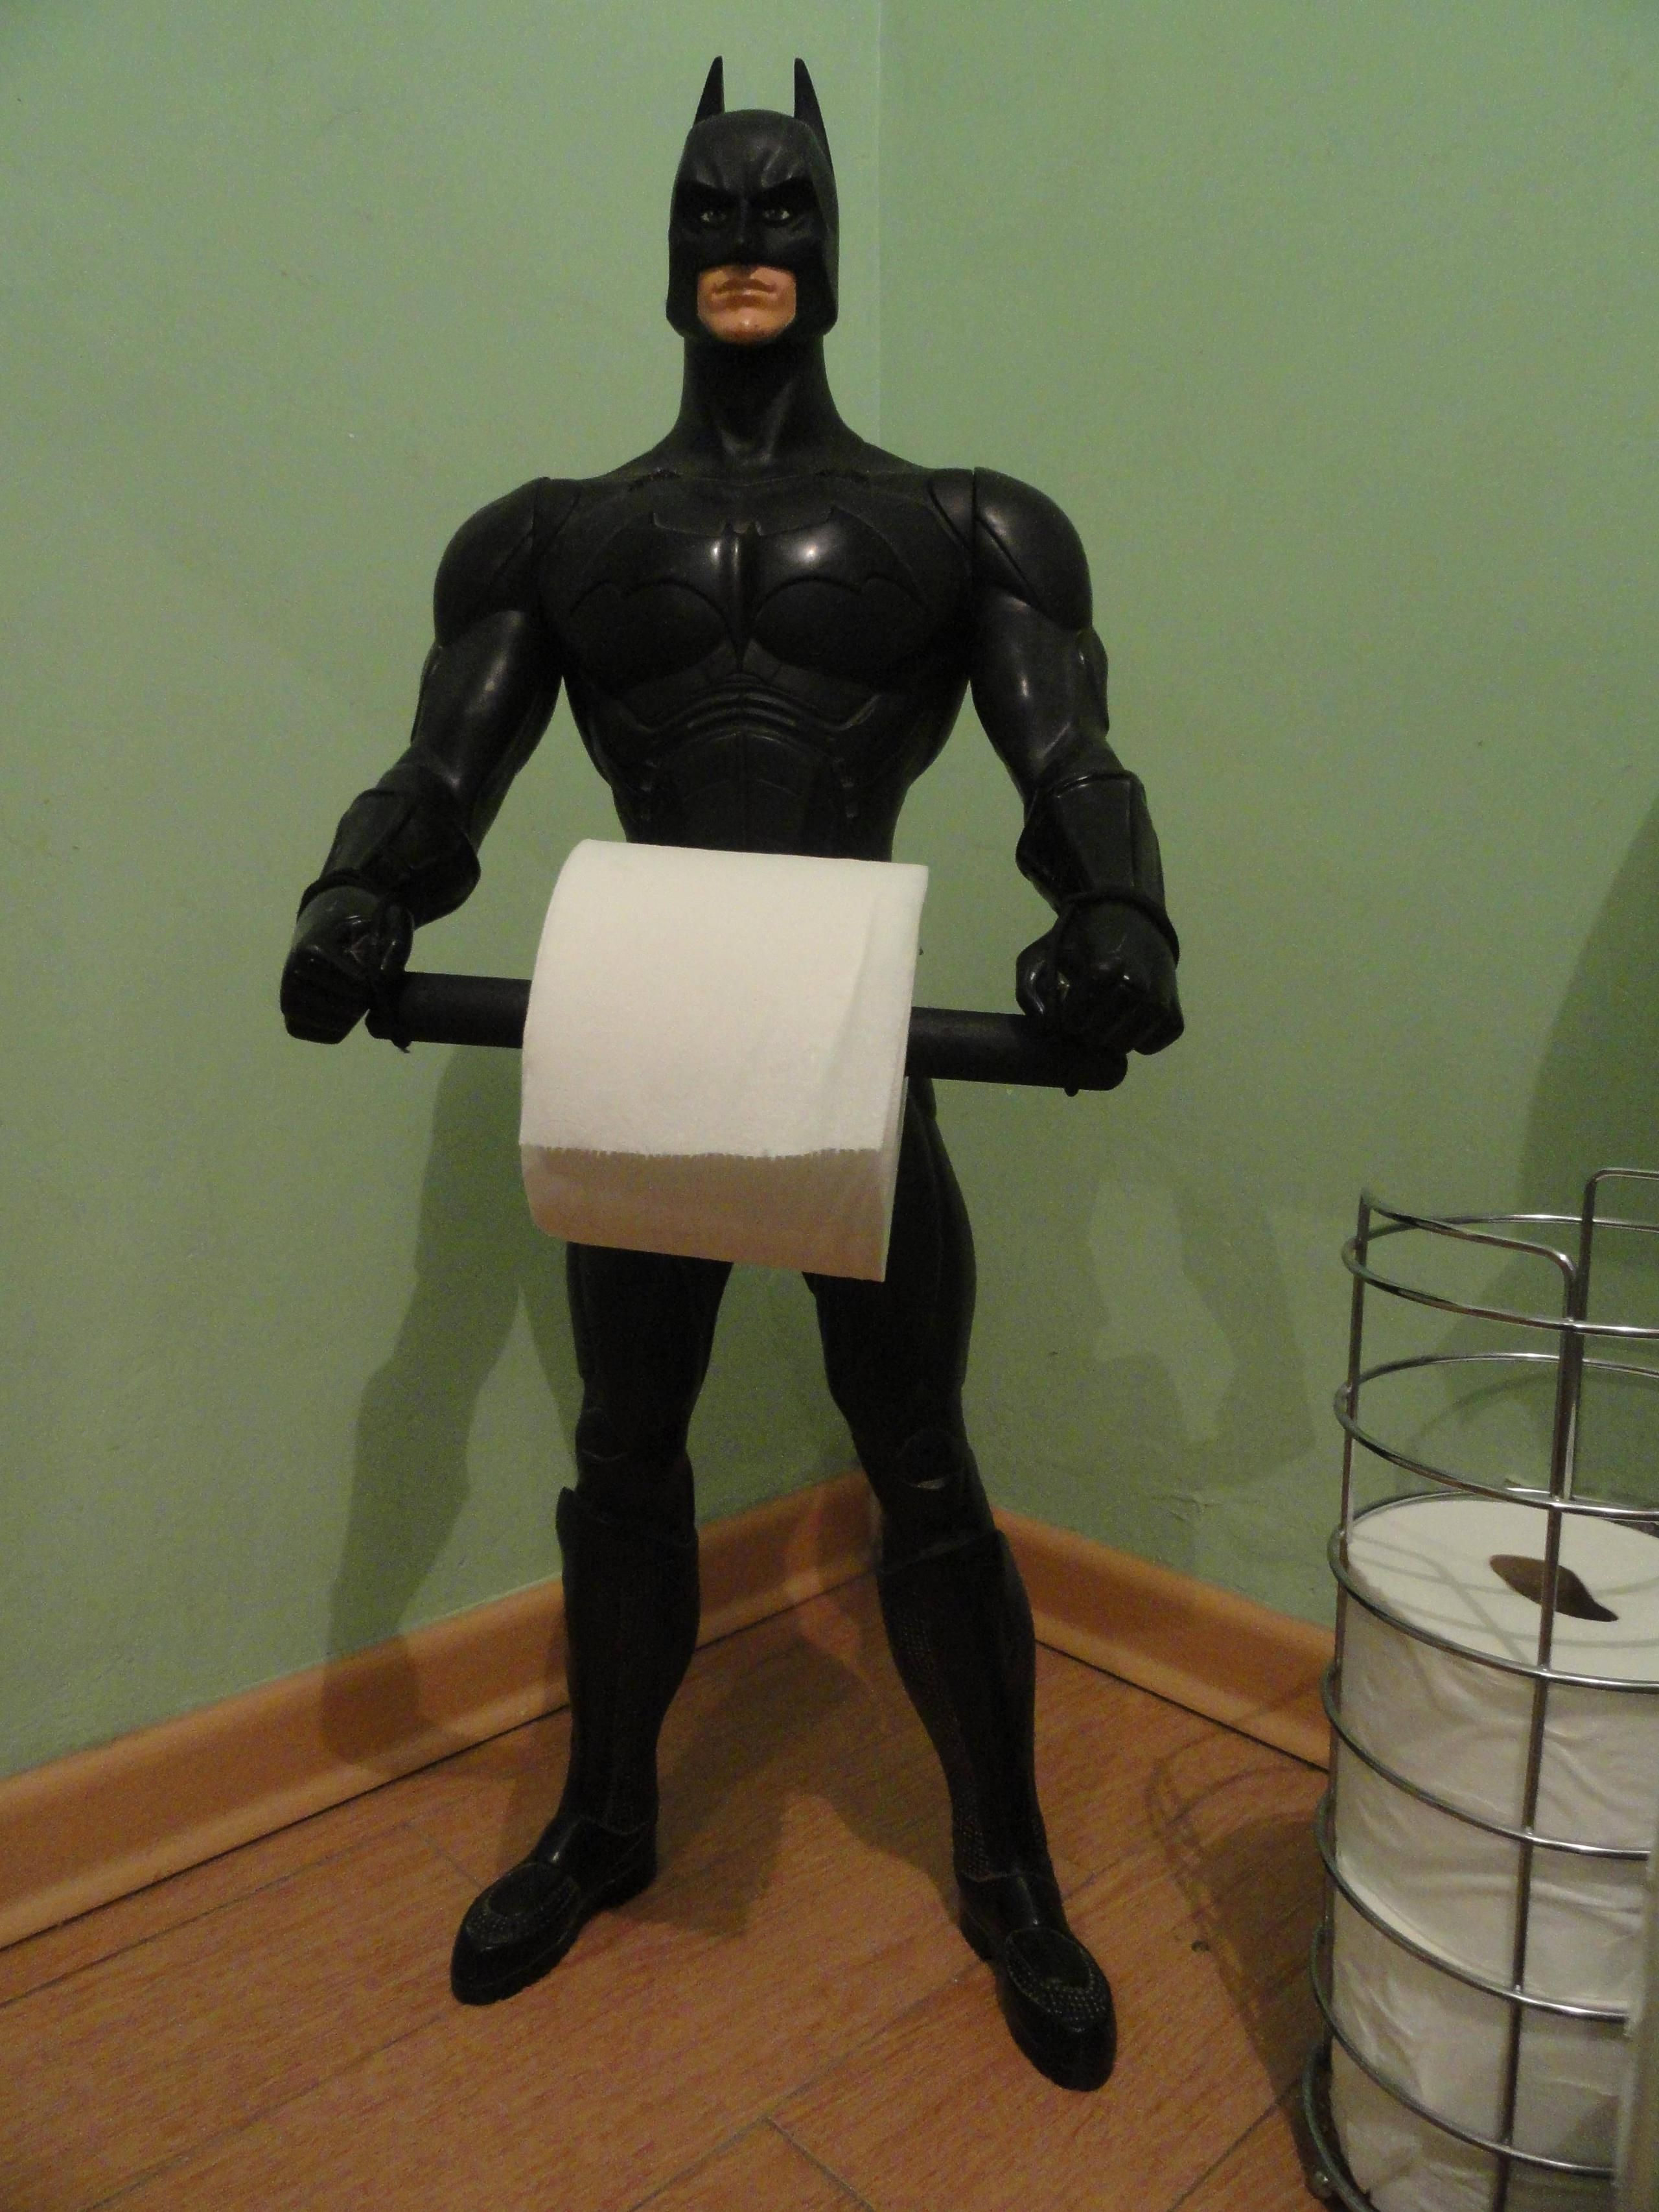 Your Batman Toilet Paper Holder Inspired Me To Do This